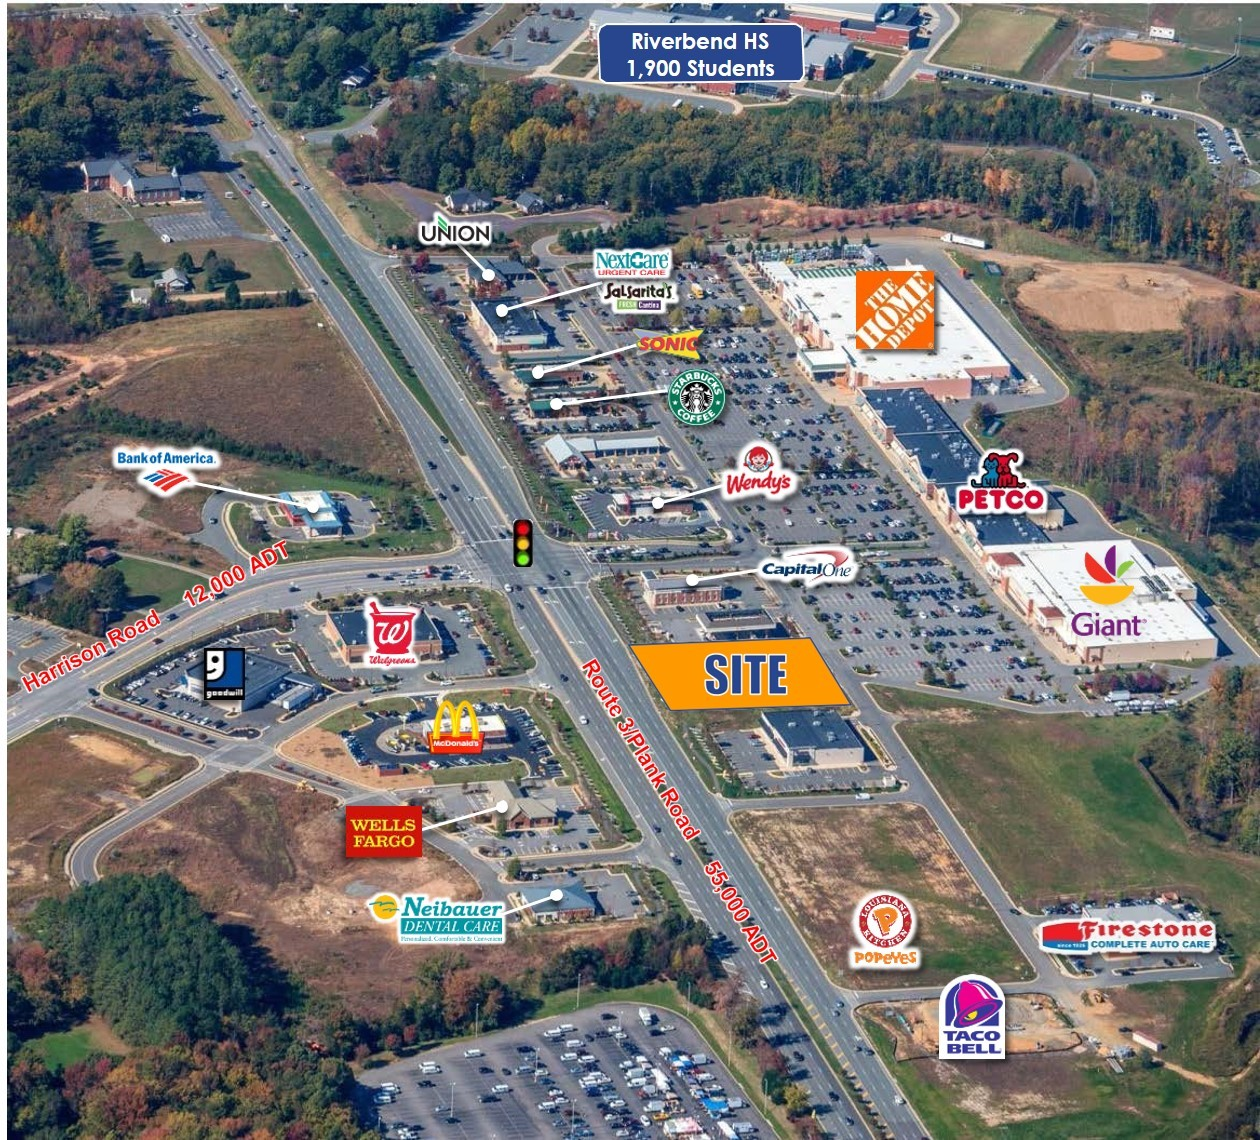 5635 PLANK ROAD FULLY LEASED AND SOLD BY COLDWELL BANKER COMMERCIAL ELITE'S DONNY SELF AND CAMERON COLEMAN